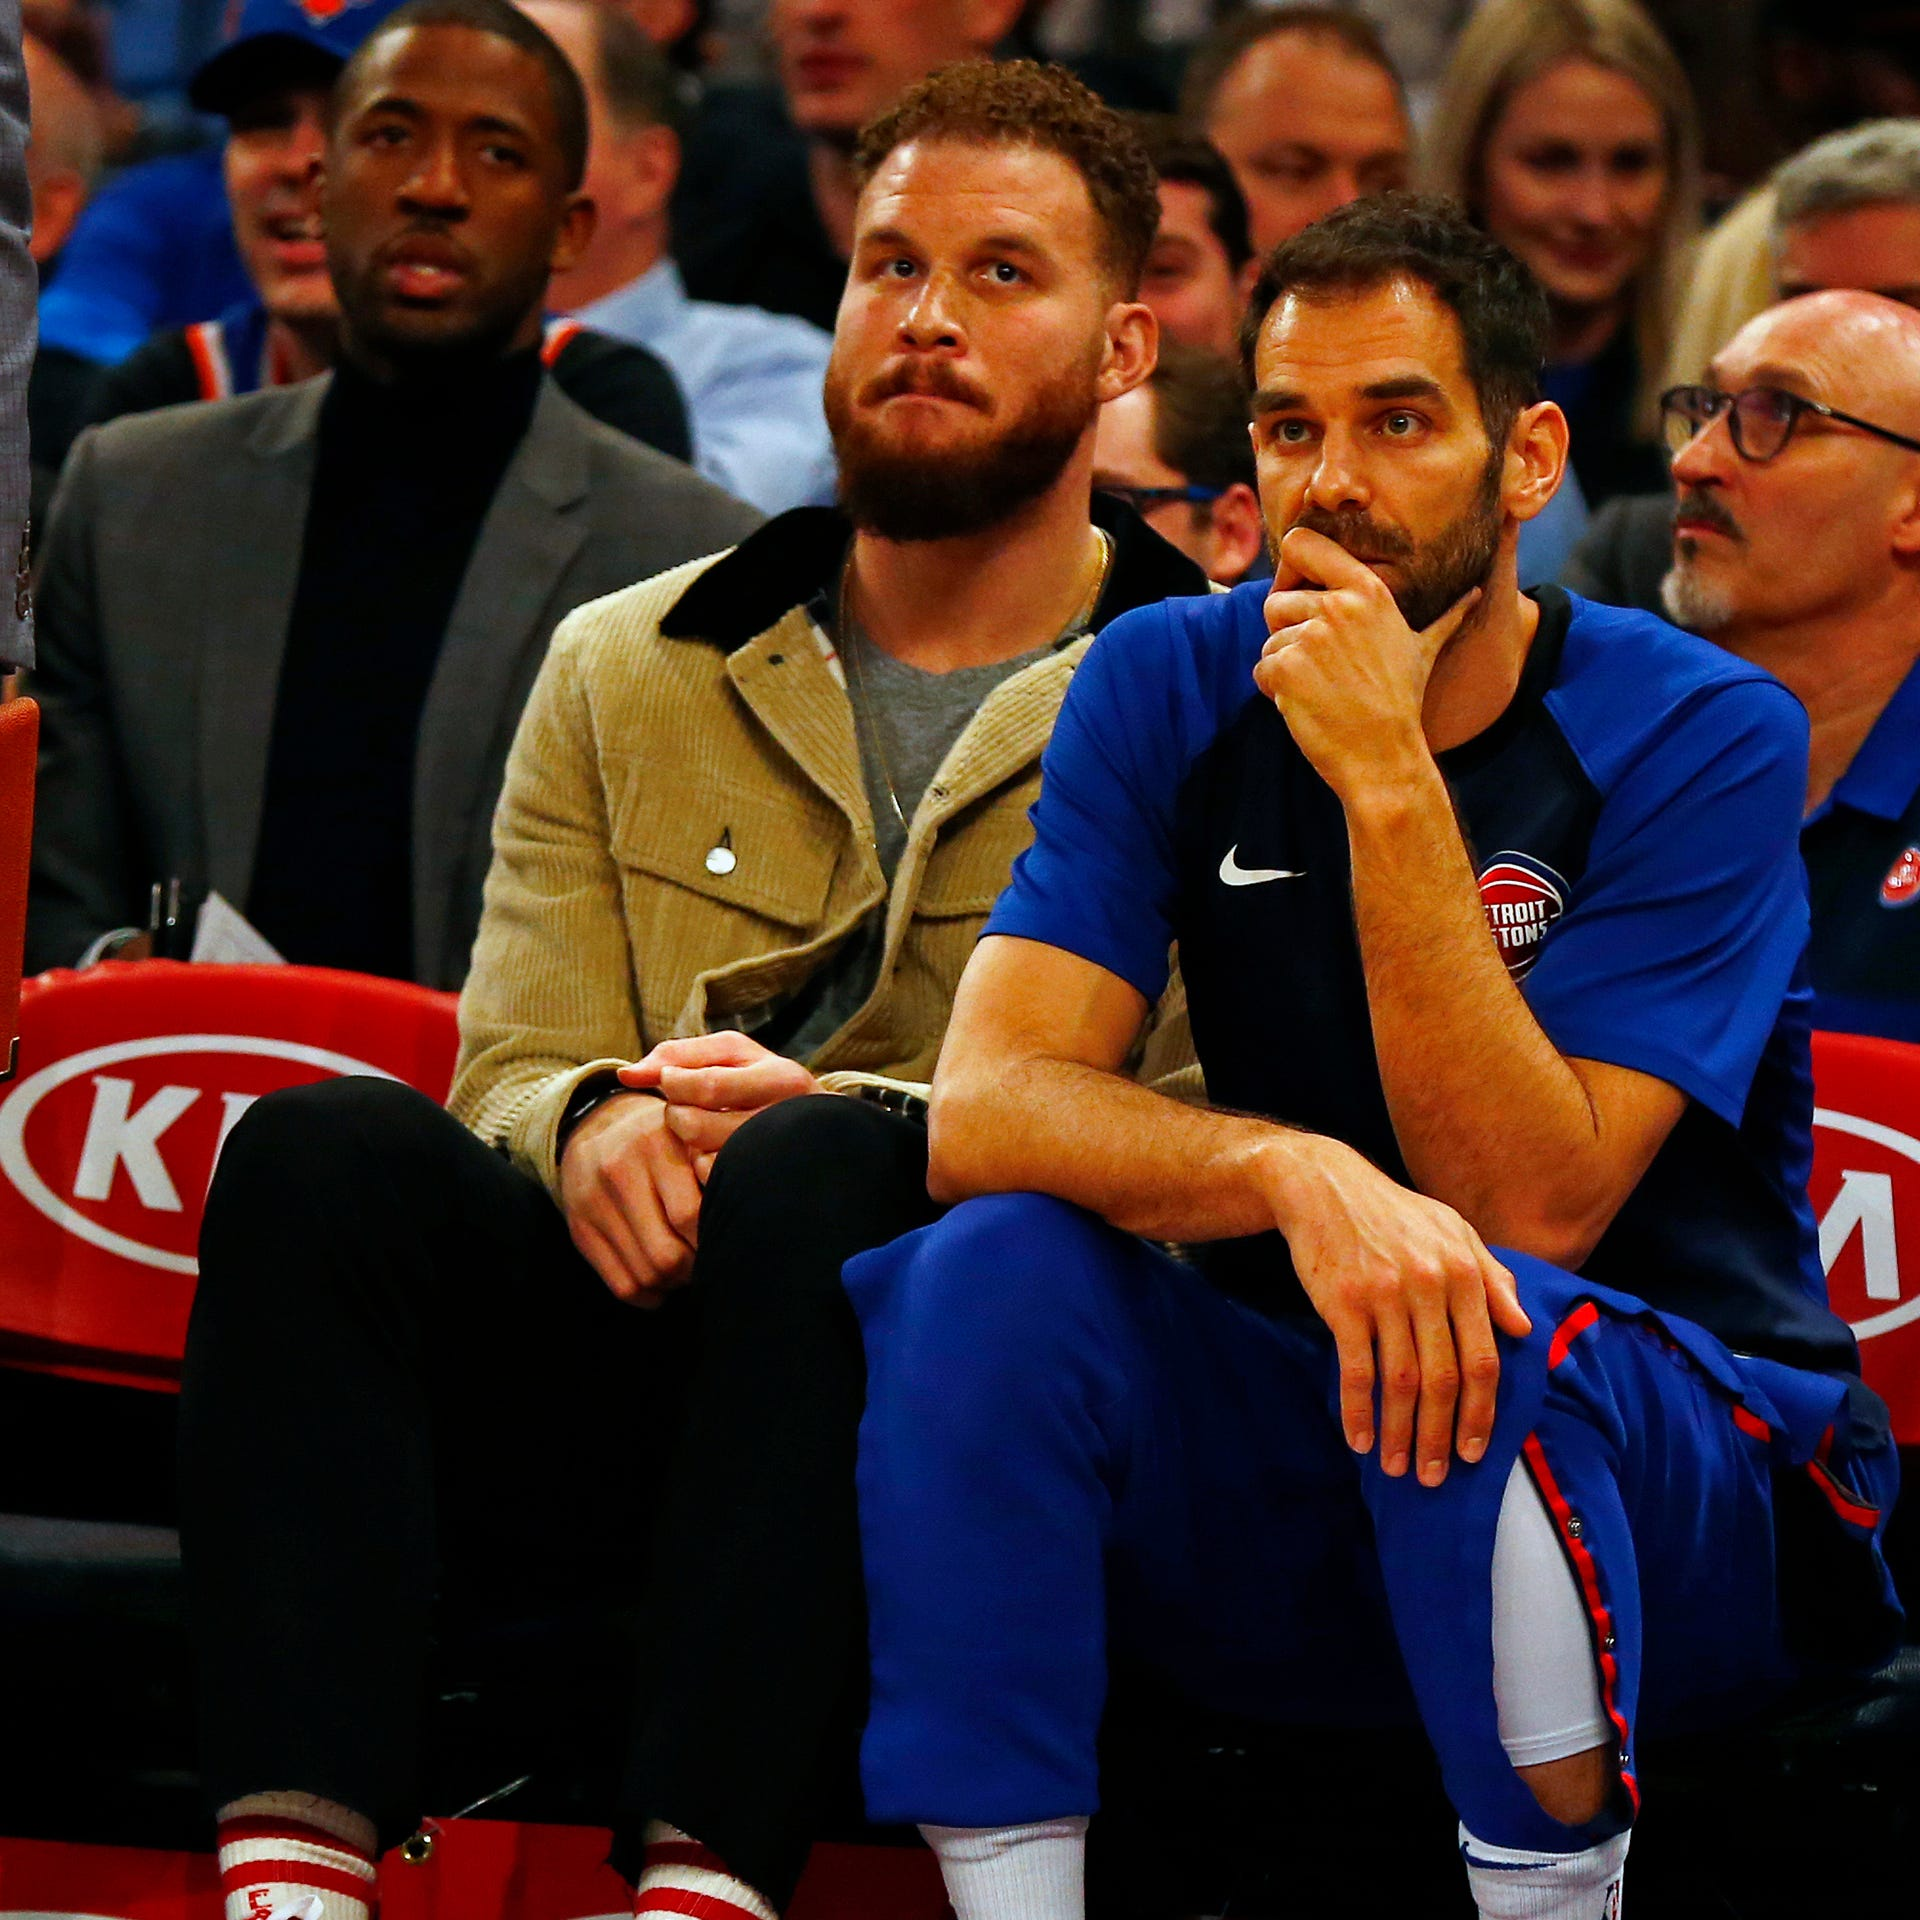 Detroit Pistons' Blake Griffin (left knee) out for Game 1 vs. Bucks